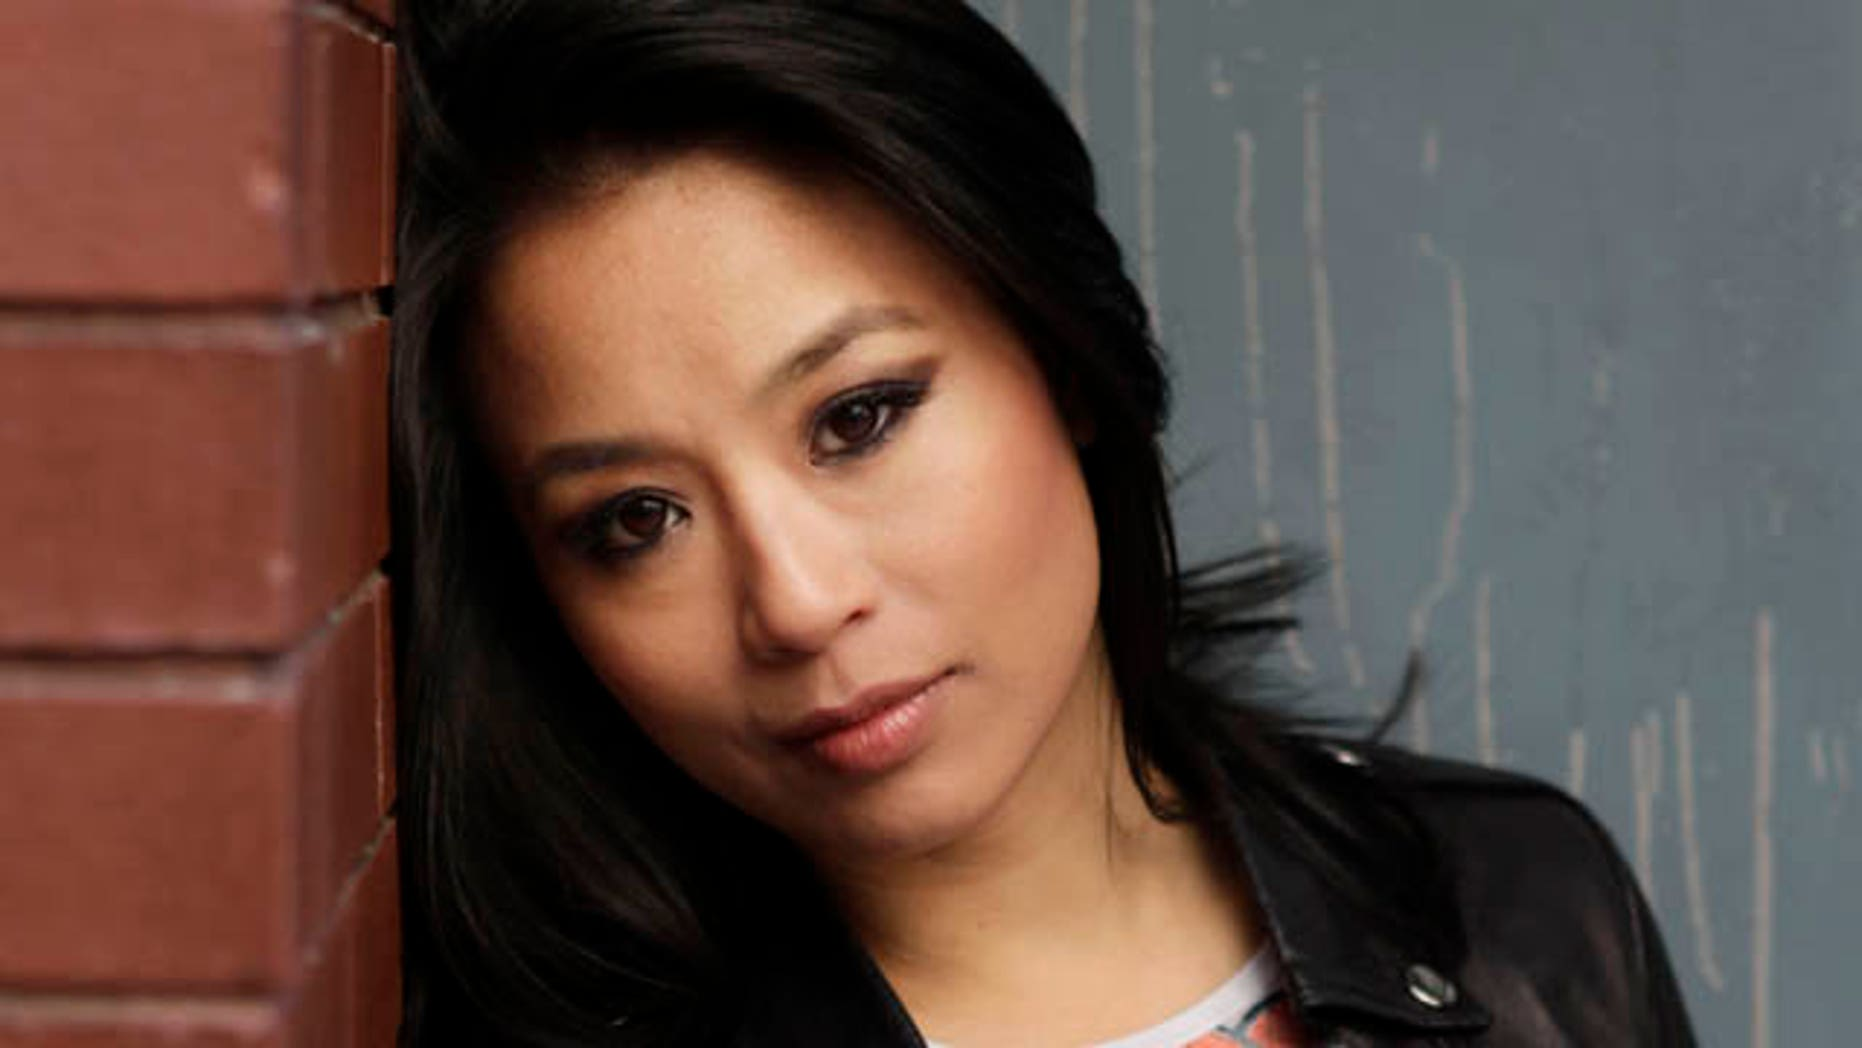 """In this Feb. 8, 2011 photo, actress T.V. Carpio, who is playing Arachne in the musical """"Spider-Man: Turn Off the Dark"""", poses for a picture in New York. Producers of the $65 million musical said Tuesday, March 22, 2011, that Carpio, who plays an evil spider woman called Arachne, was hurt last week during an onstage battle scene. She will be out for the next two weeks. (AP Photo/Seth Wenig)"""